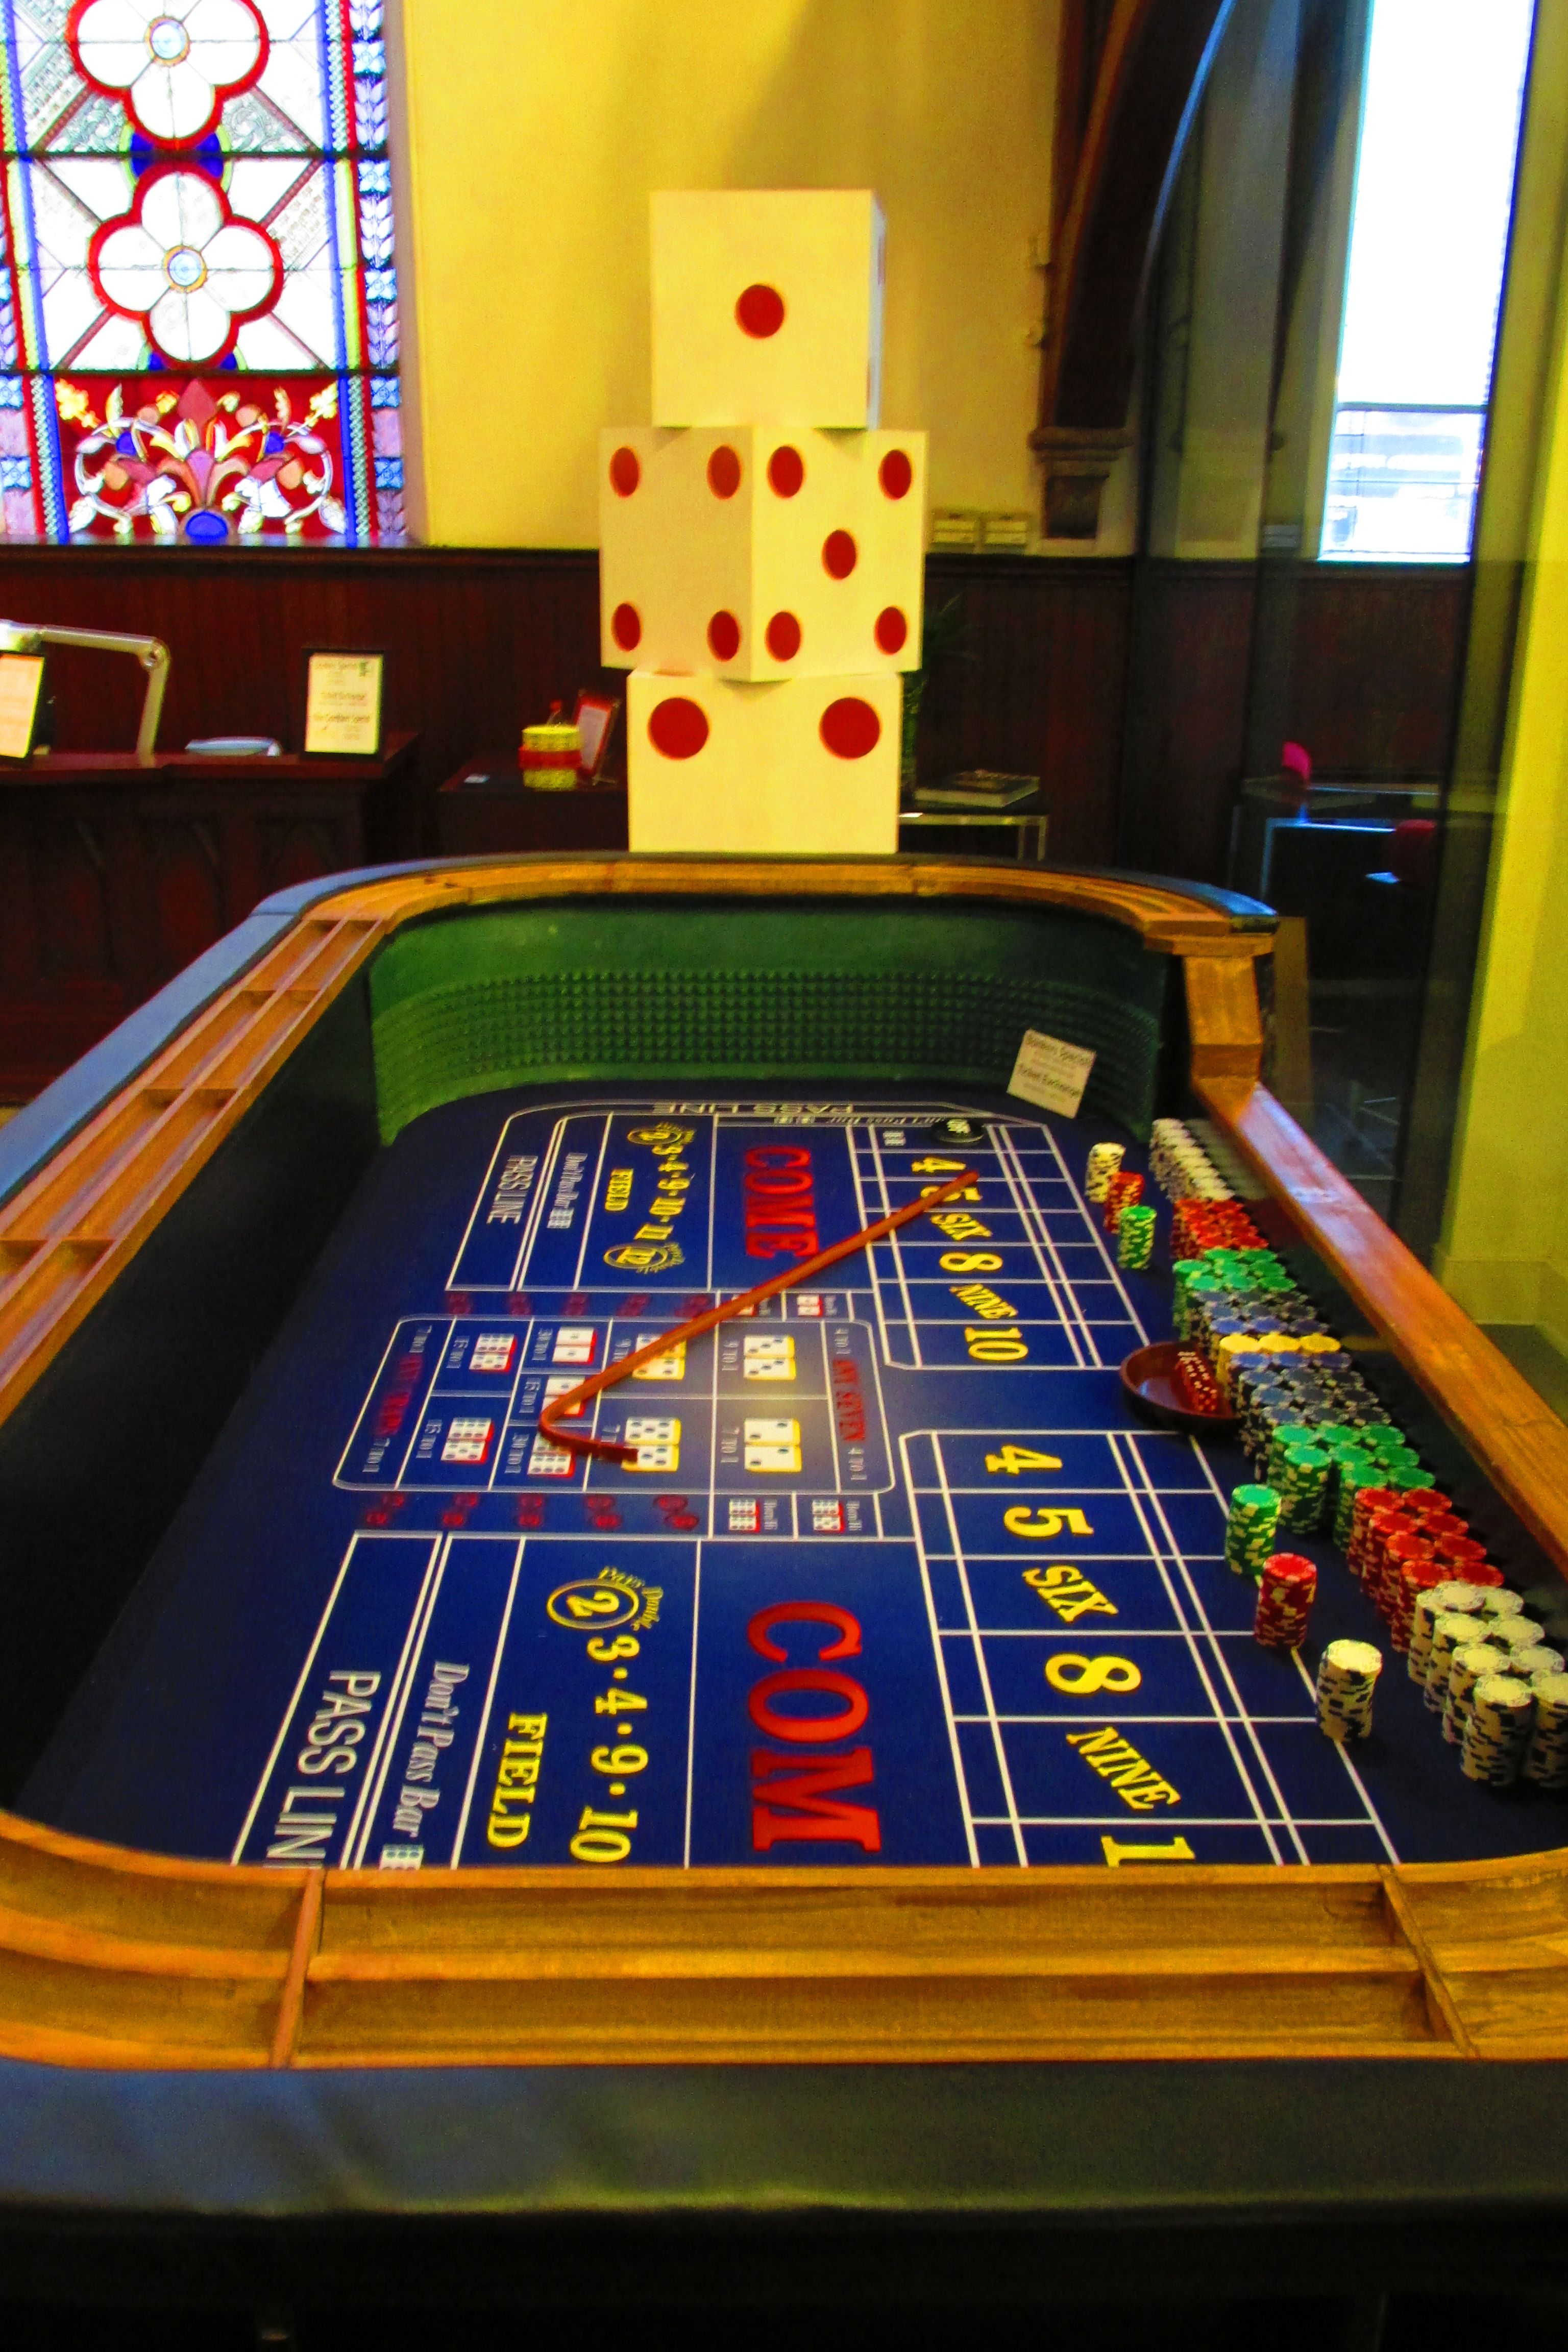 Craps table poker room pinterest for 12 craps table